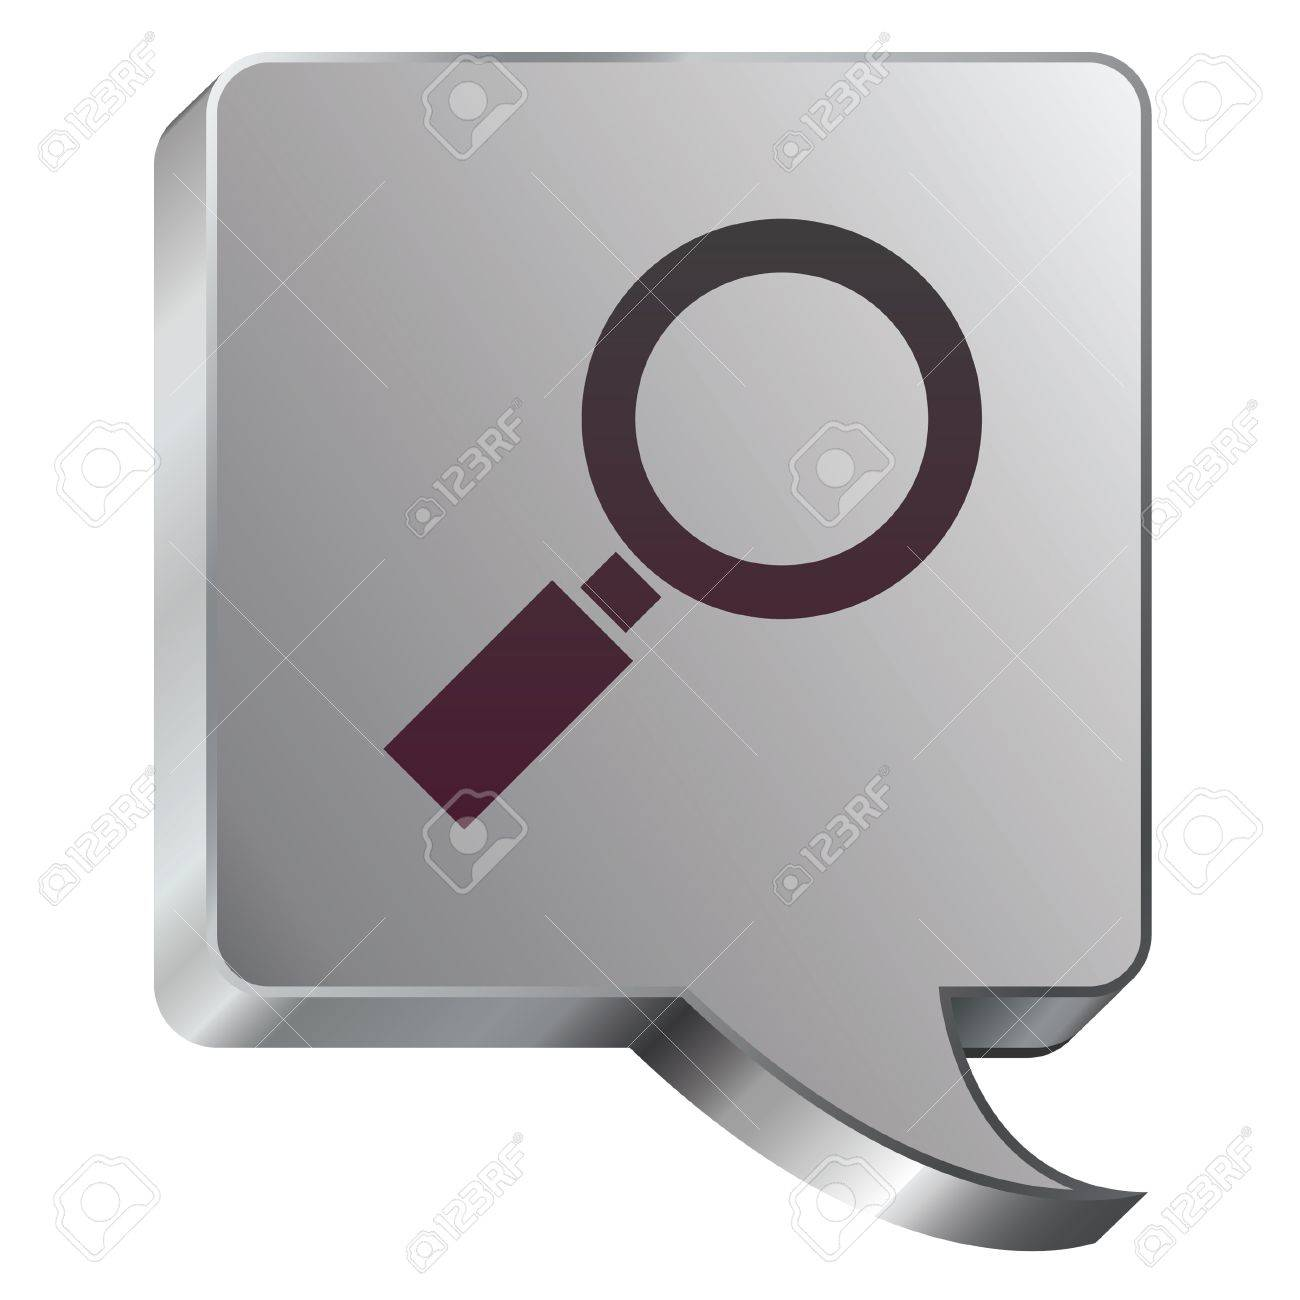 Magnifying glass or enlarge icon on stainless steel modern industrial voice bubble icon suitable for use as a website accent, on promotional materials, or in advertisements Stock Vector - 14707977